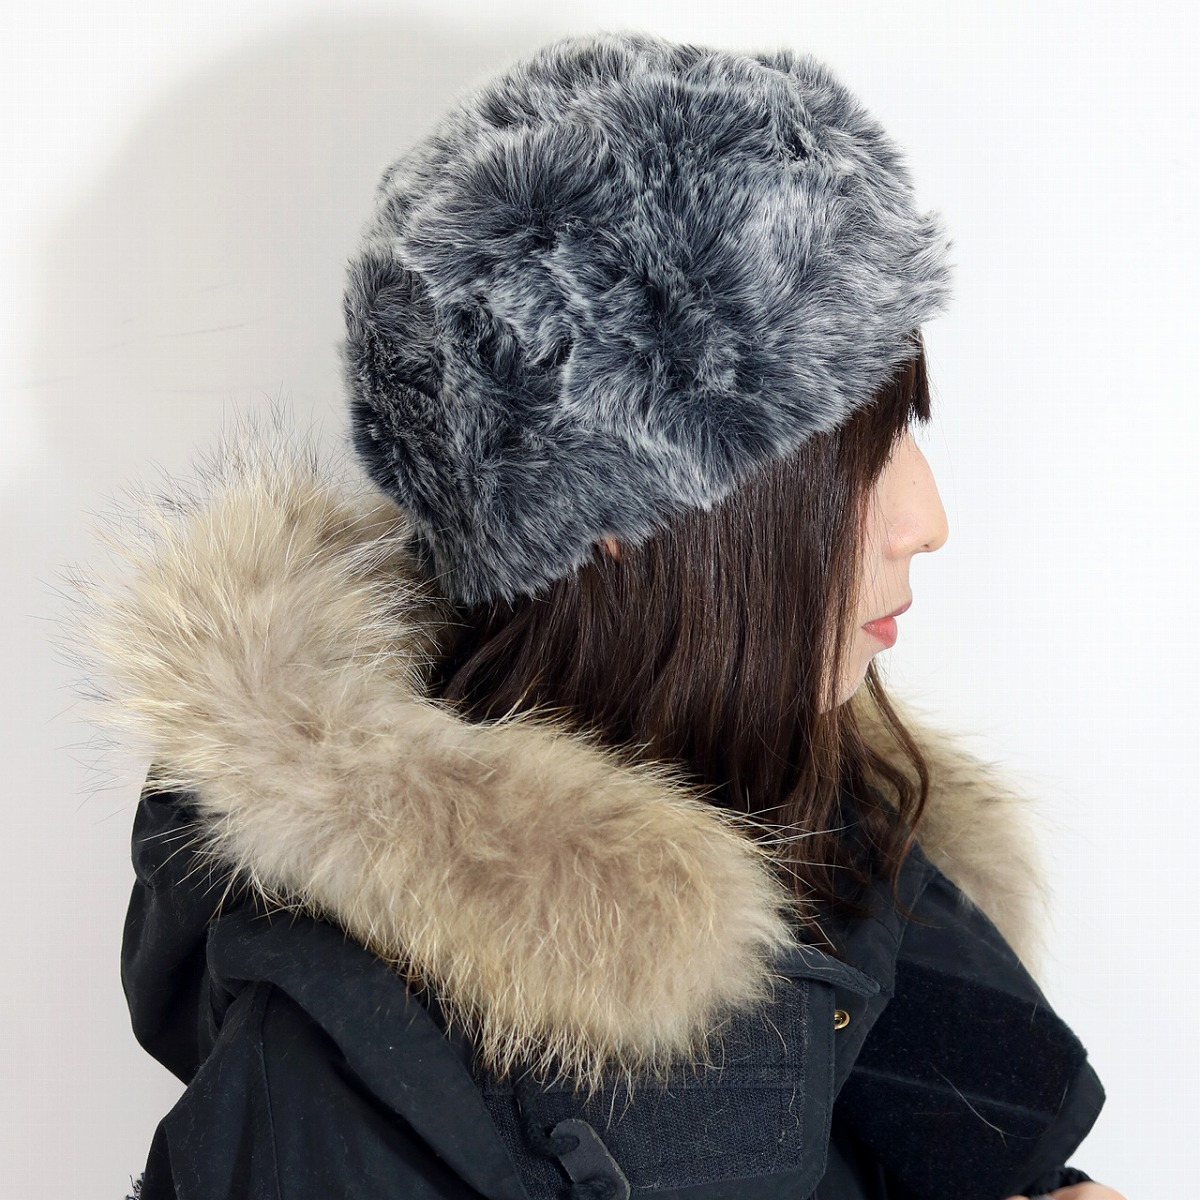 213bd6946 Roberto idea ROBERTidea Russian hat hat fur foreign countries buran mud  cyan hat Lady's hat black black (Christmas gift packing lapping free of ...